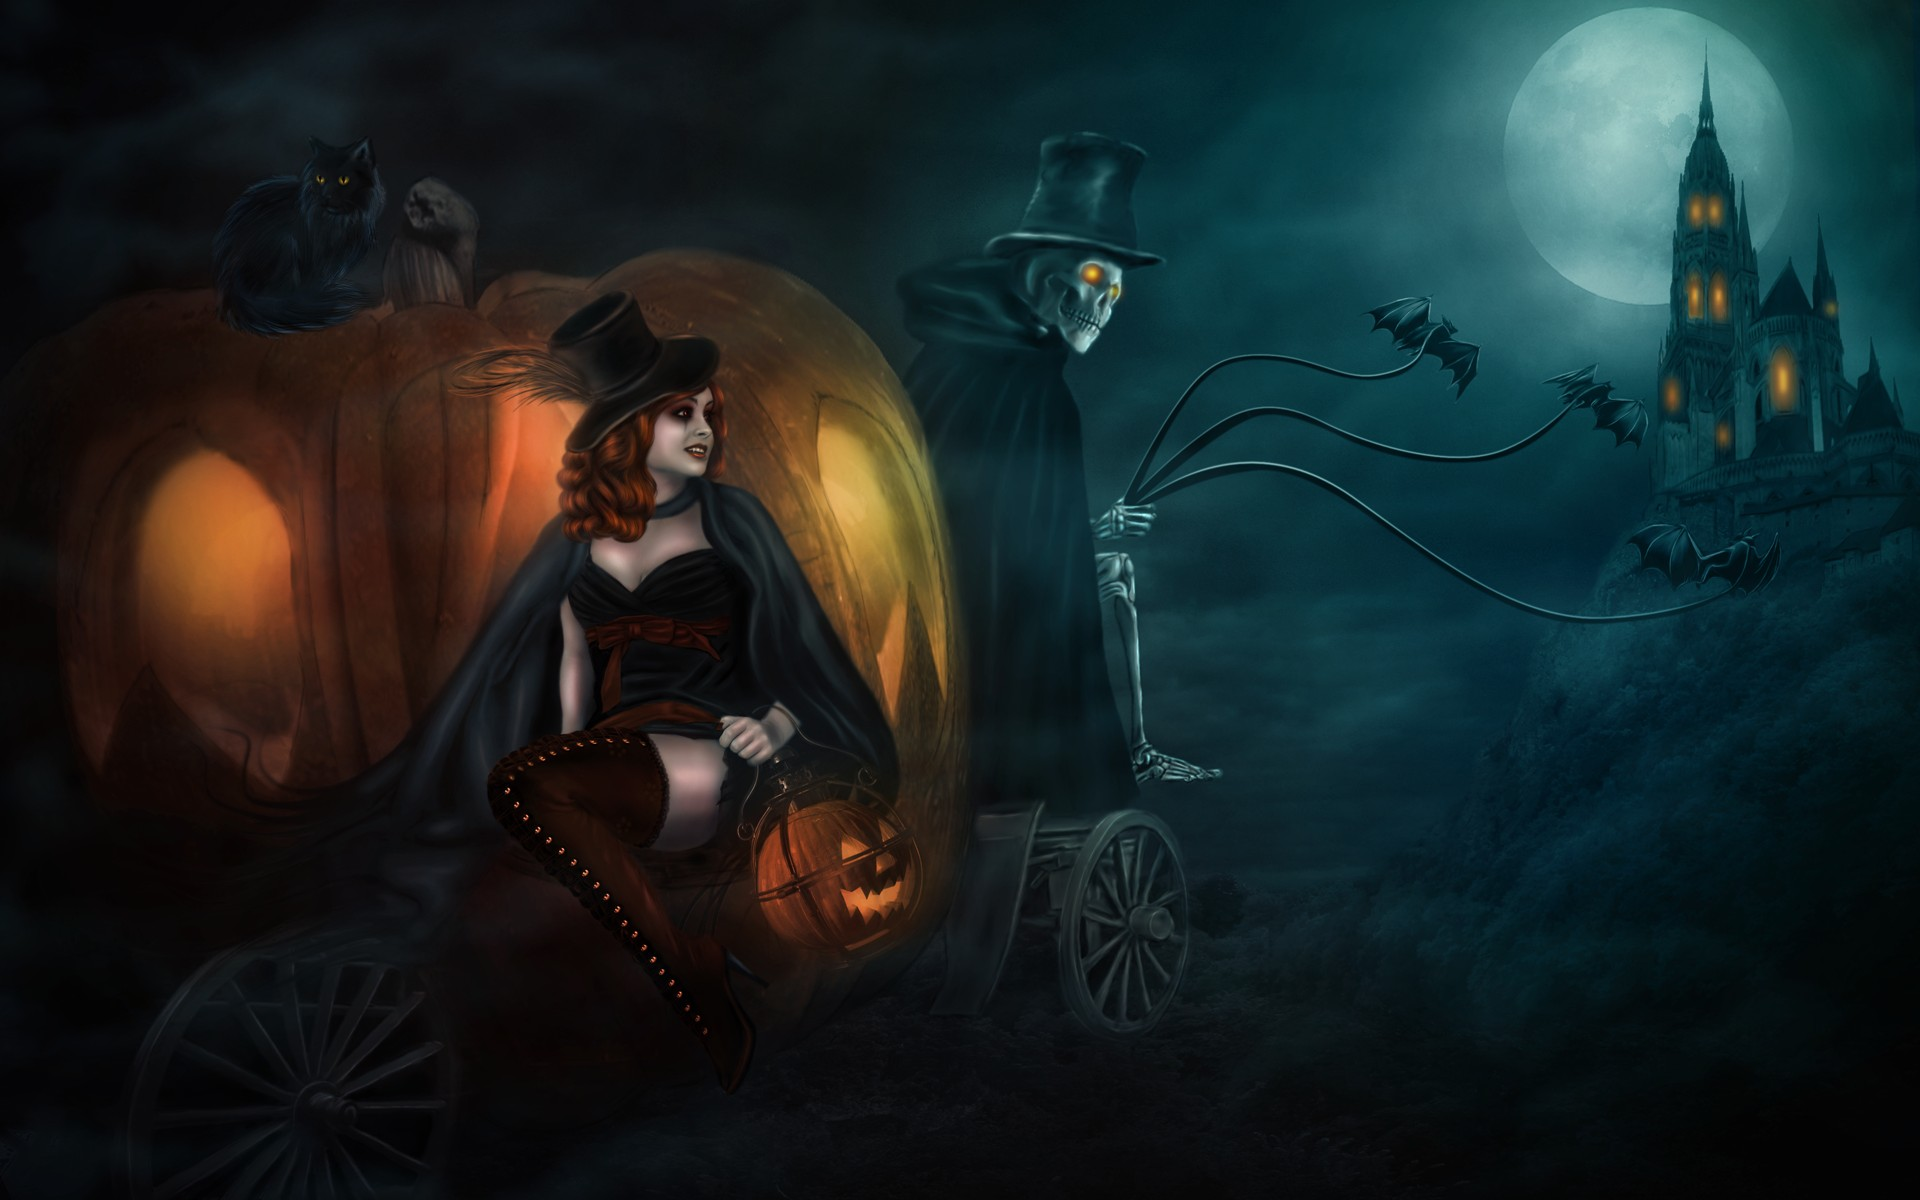 Great Wallpaper Halloween Iphone 5 - 173432-free-halloween-desktop-backgrounds-1920x1200-for-iphone-5s  Perfect Image Reference_542548.jpg